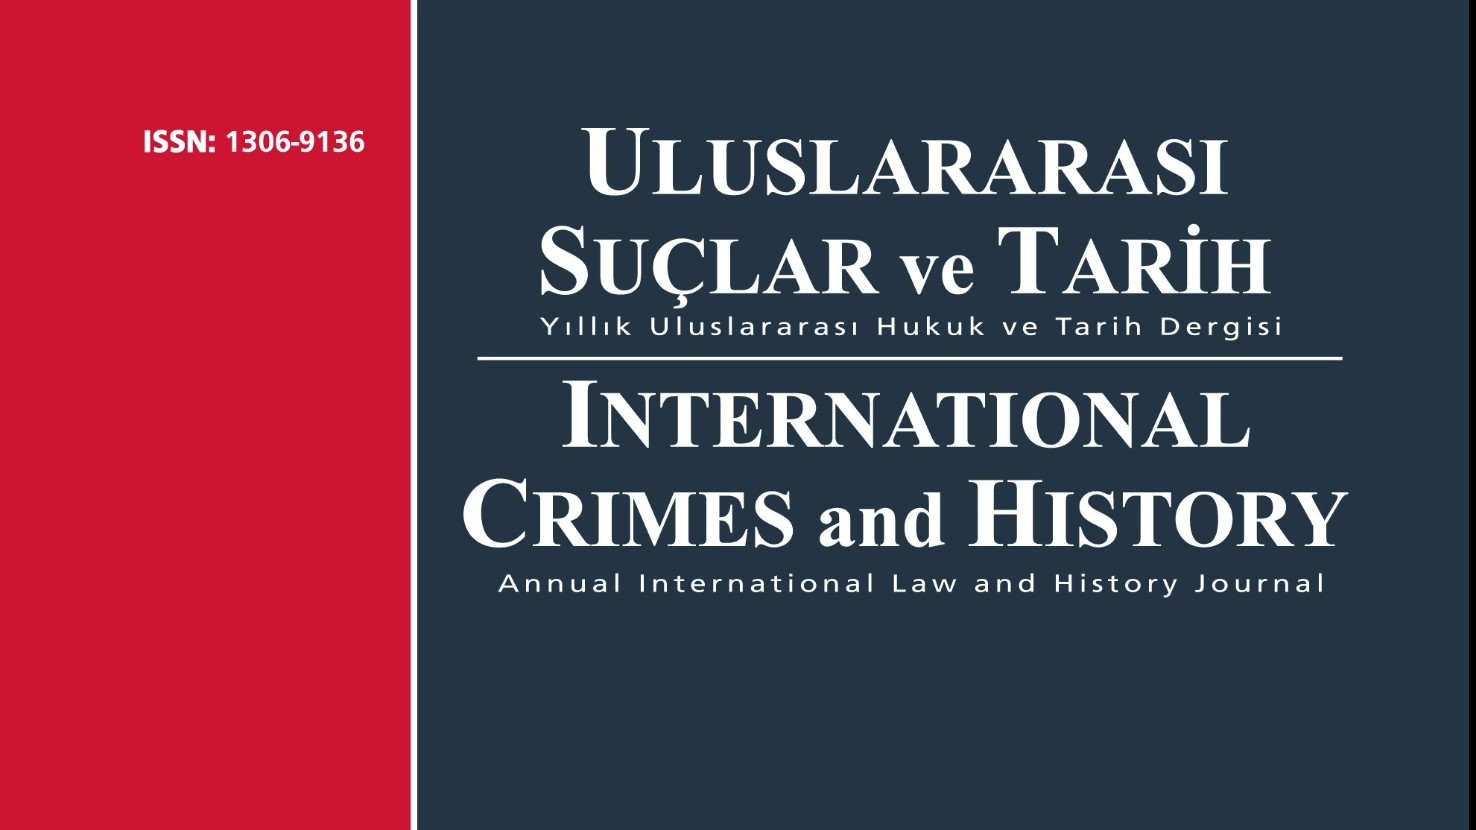 ANNOUNCEMENT: THE 20TH ISSUE OF ULUSLARARASI SUÇLAR VE TARIH / INTERNATIONAL CRIMES AND HISTORY HAS BEEN PUBLISHED